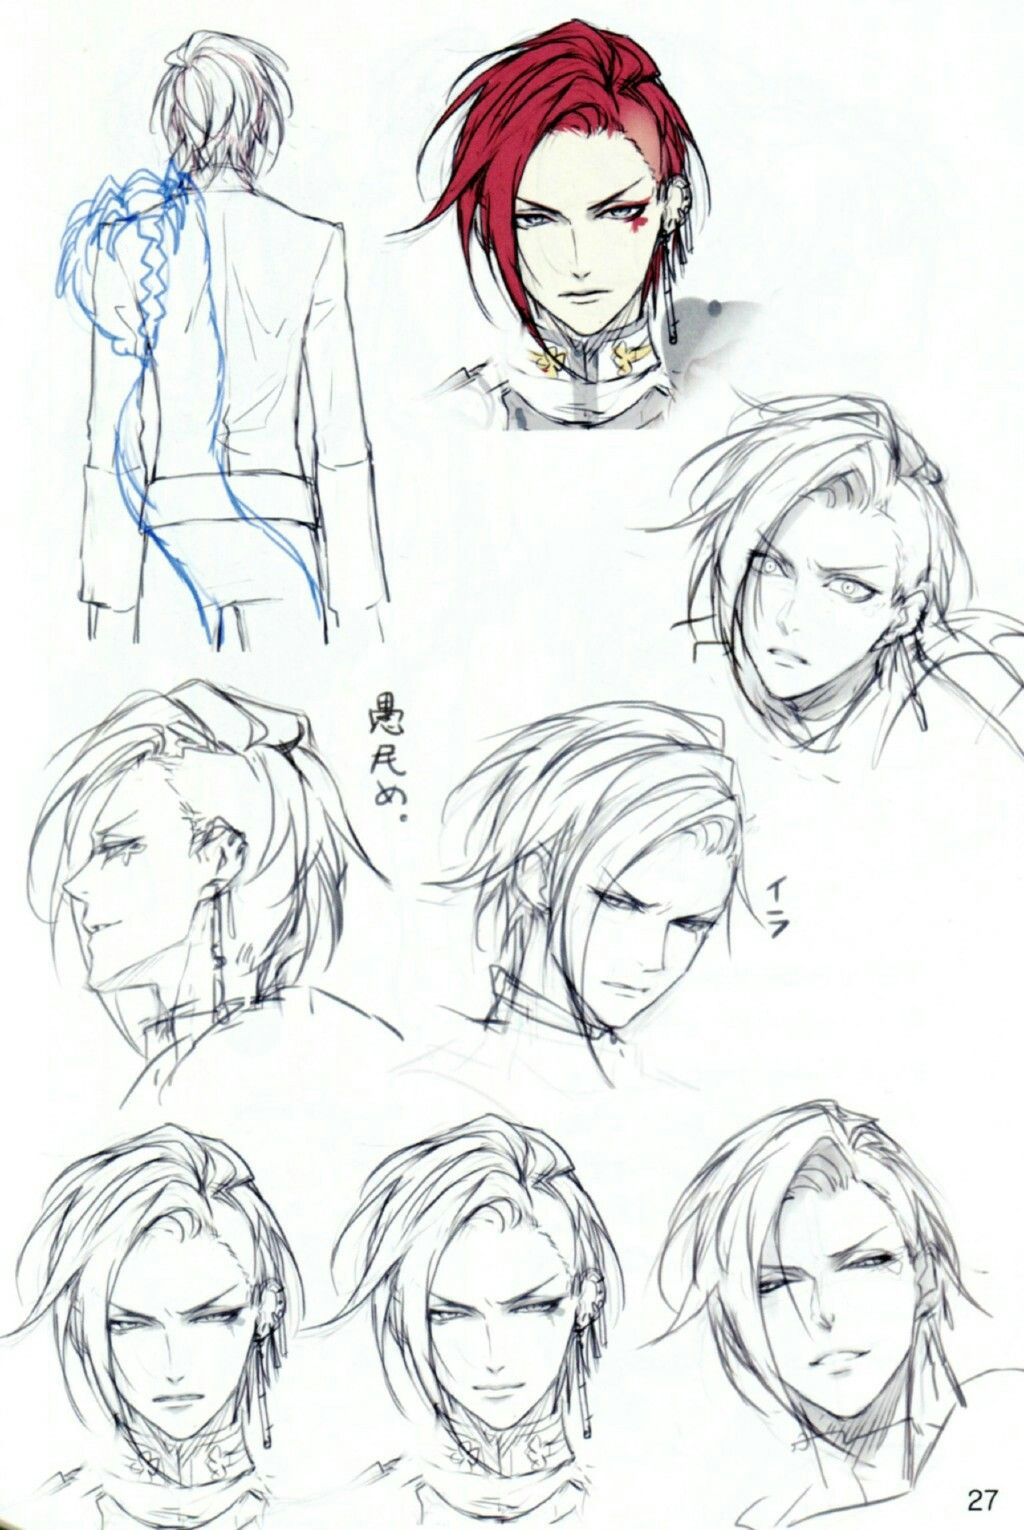 Image not own by me, just repinning it. Dessin coiffure